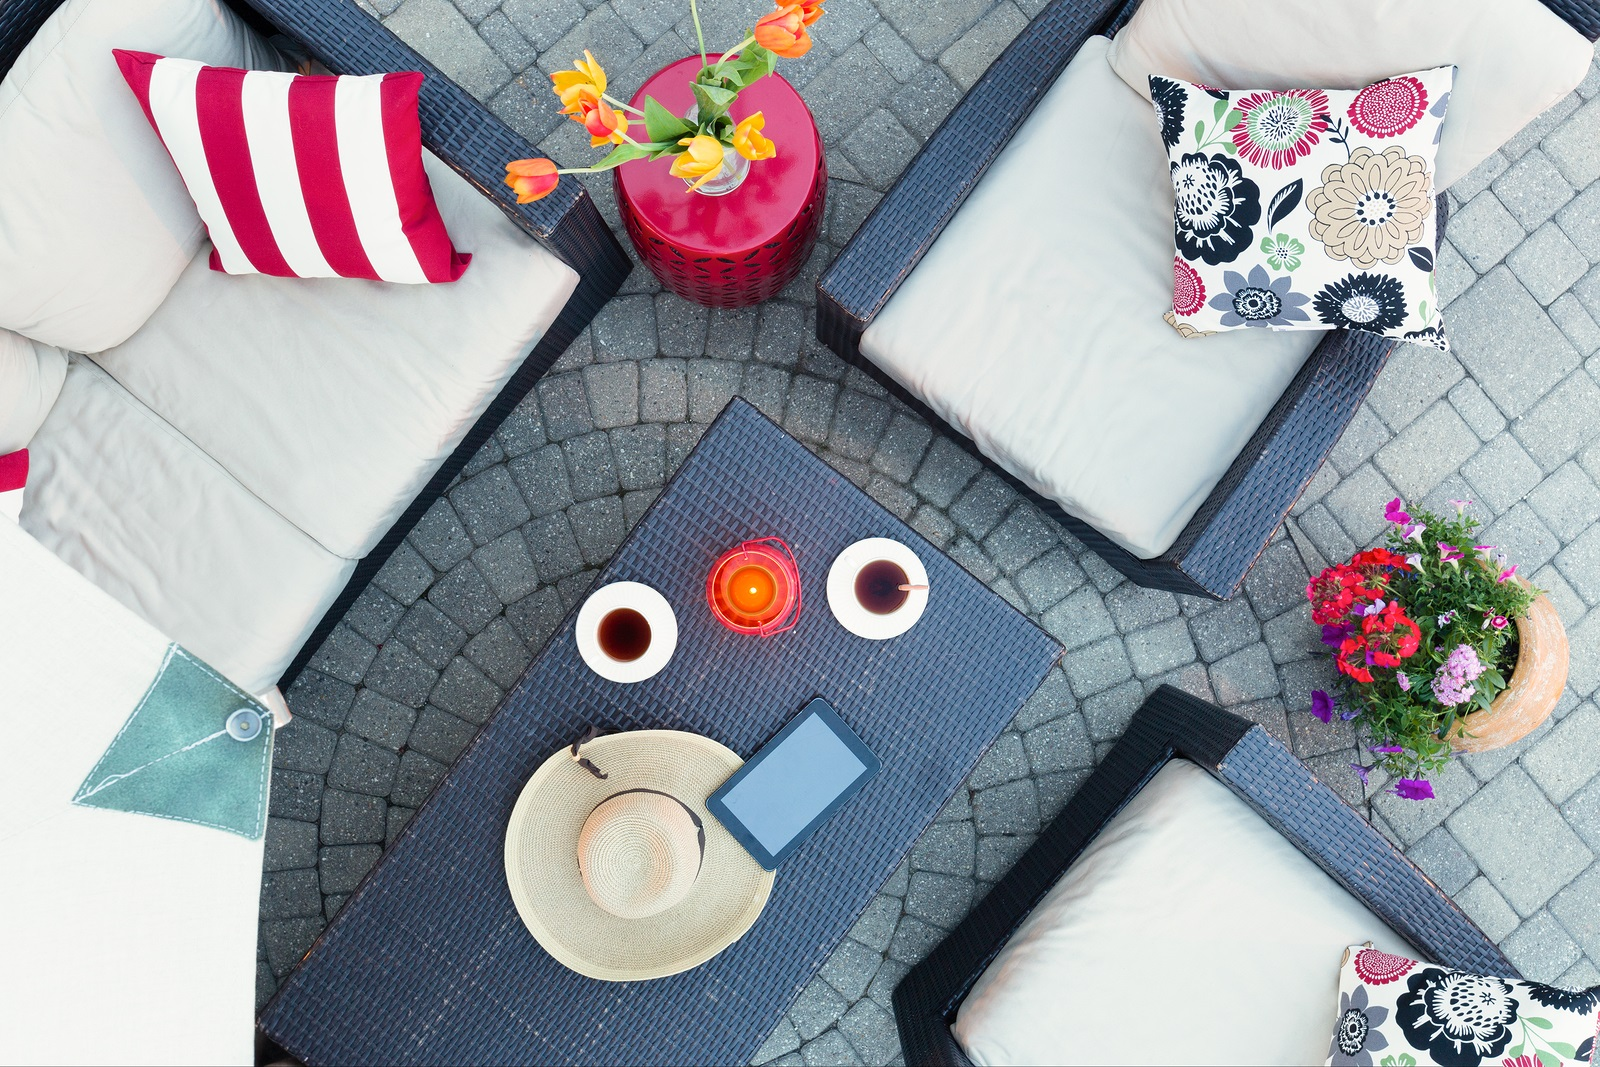 Top 5 Outdoor Living Trend Predictions for 2018